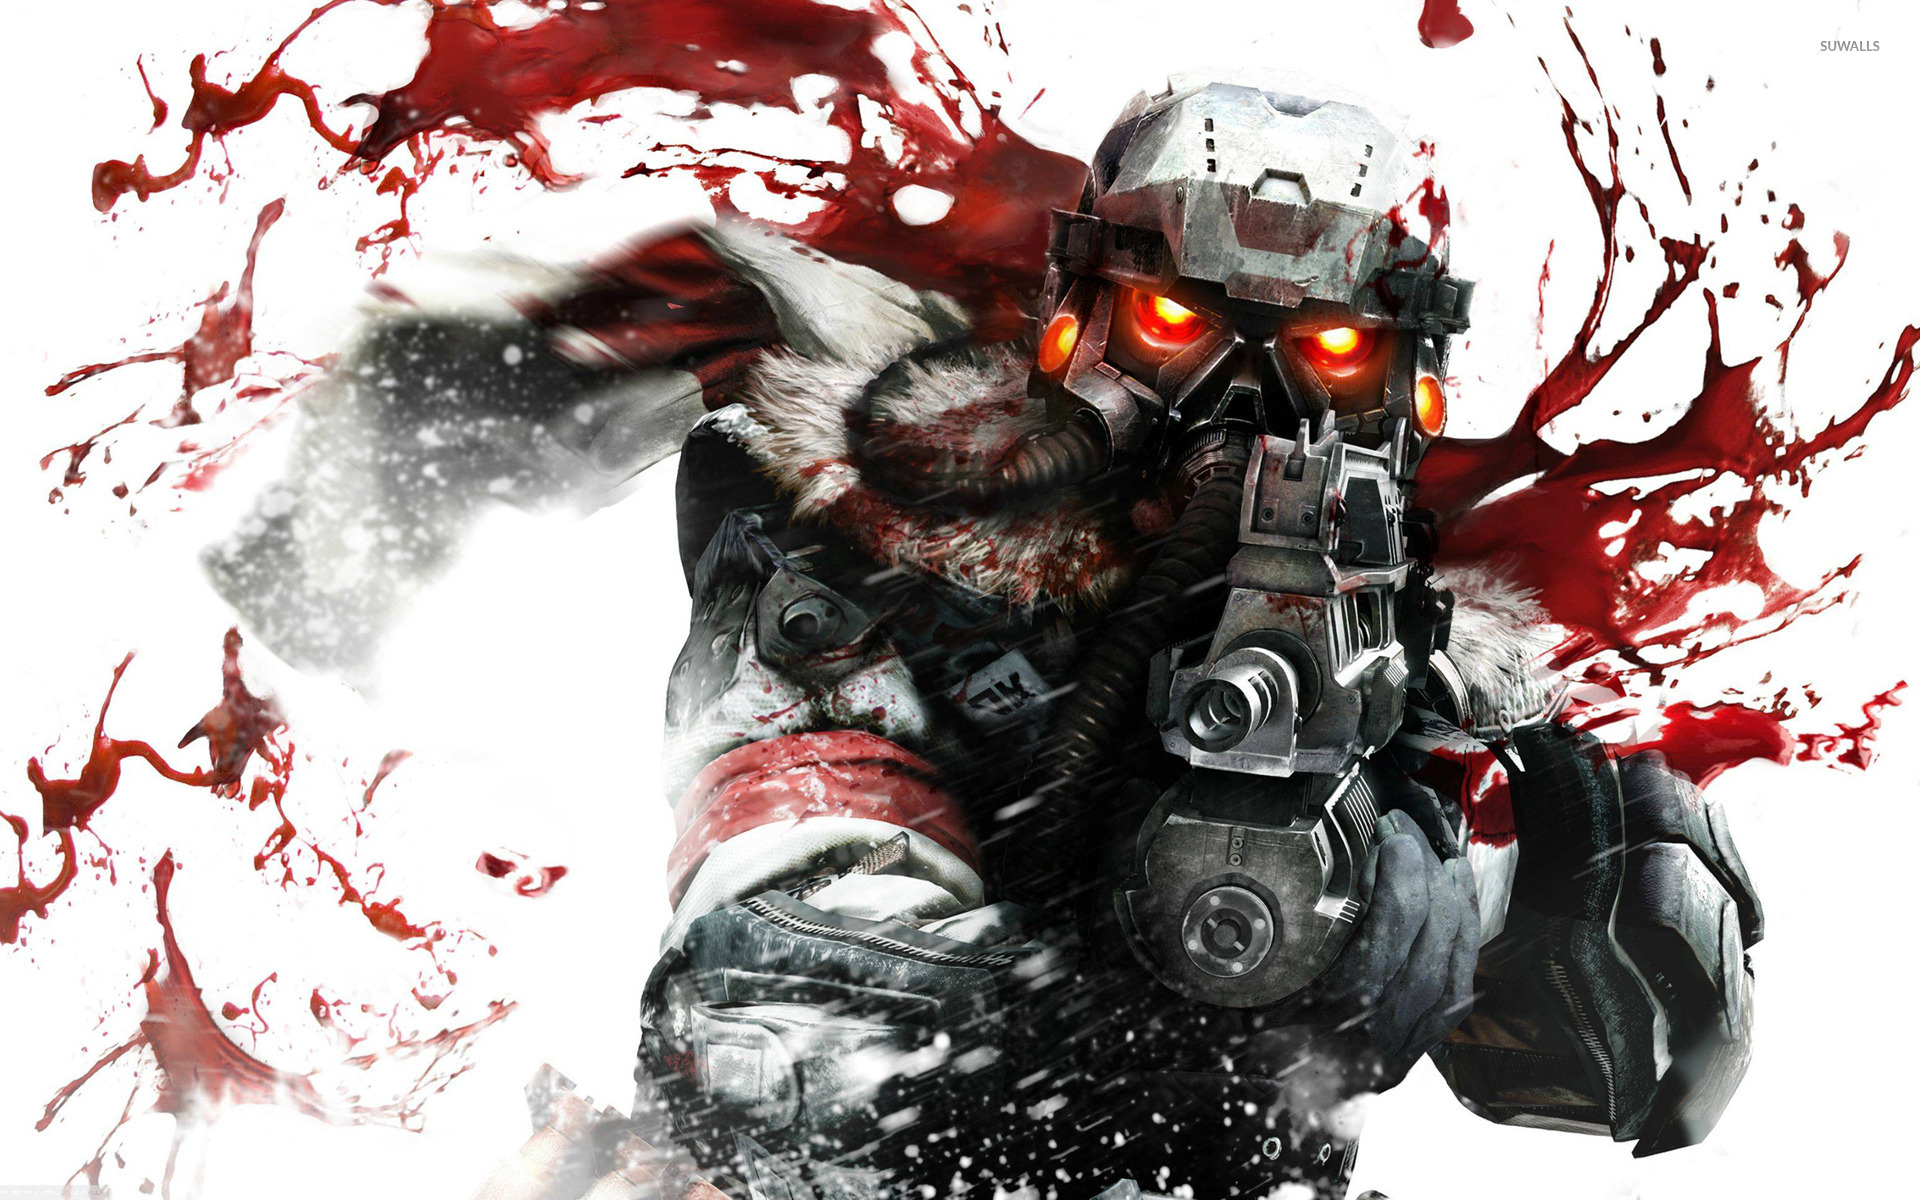 Killzone 3 wallpaper - Game wallpapers - #15281